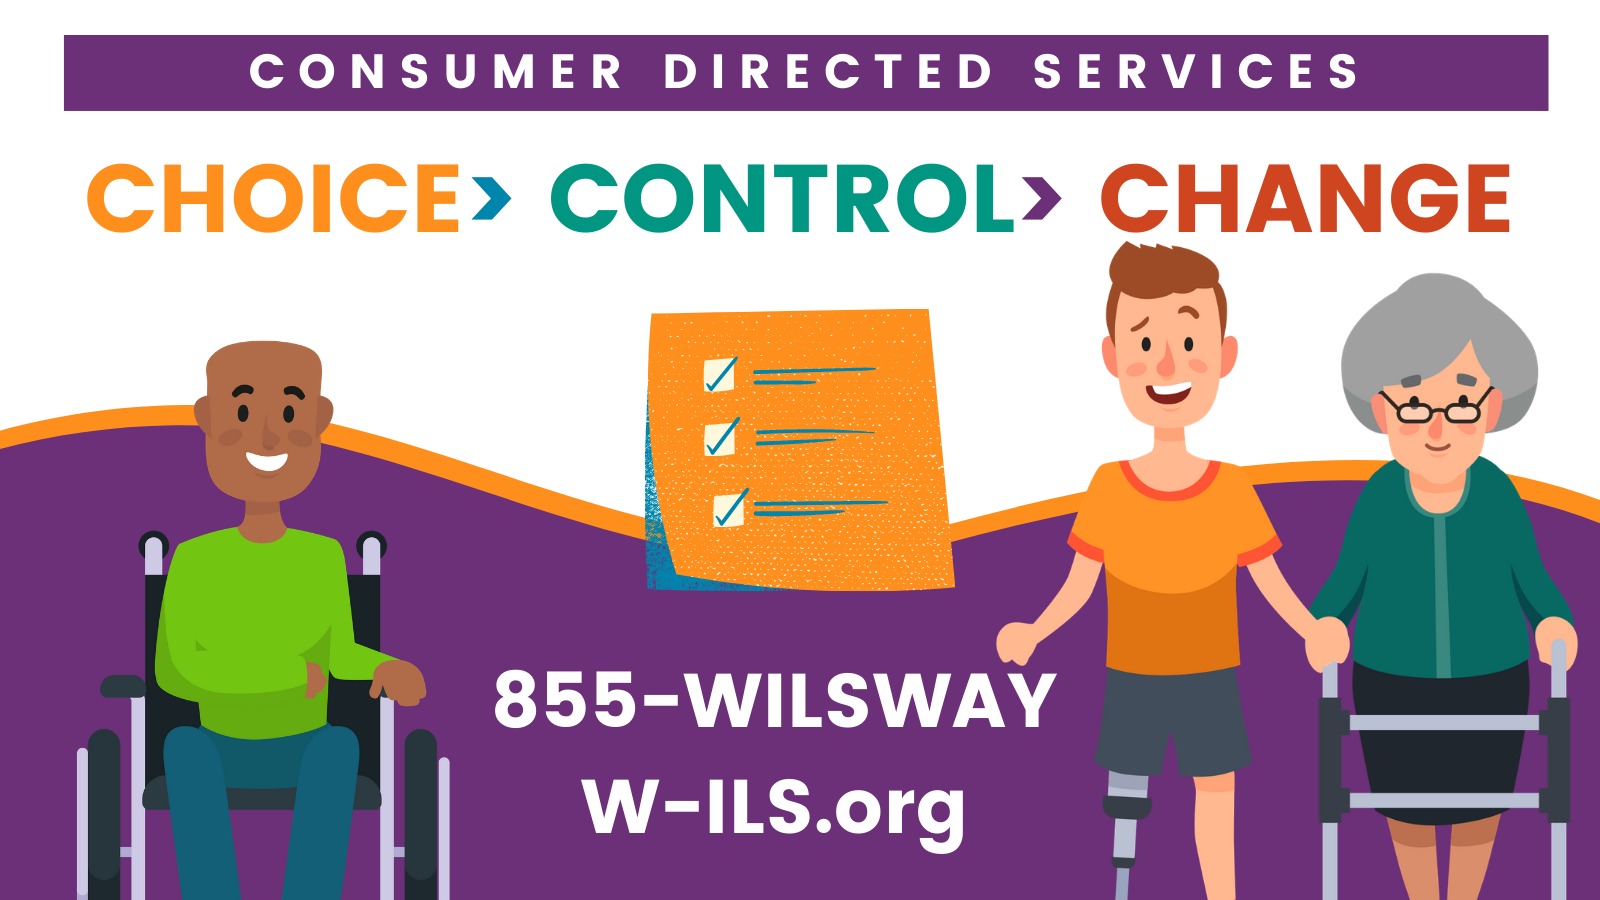 Consumer Directed Services offers choice, control, and change. Call 855-WILSWAY or visit W-ILS.org